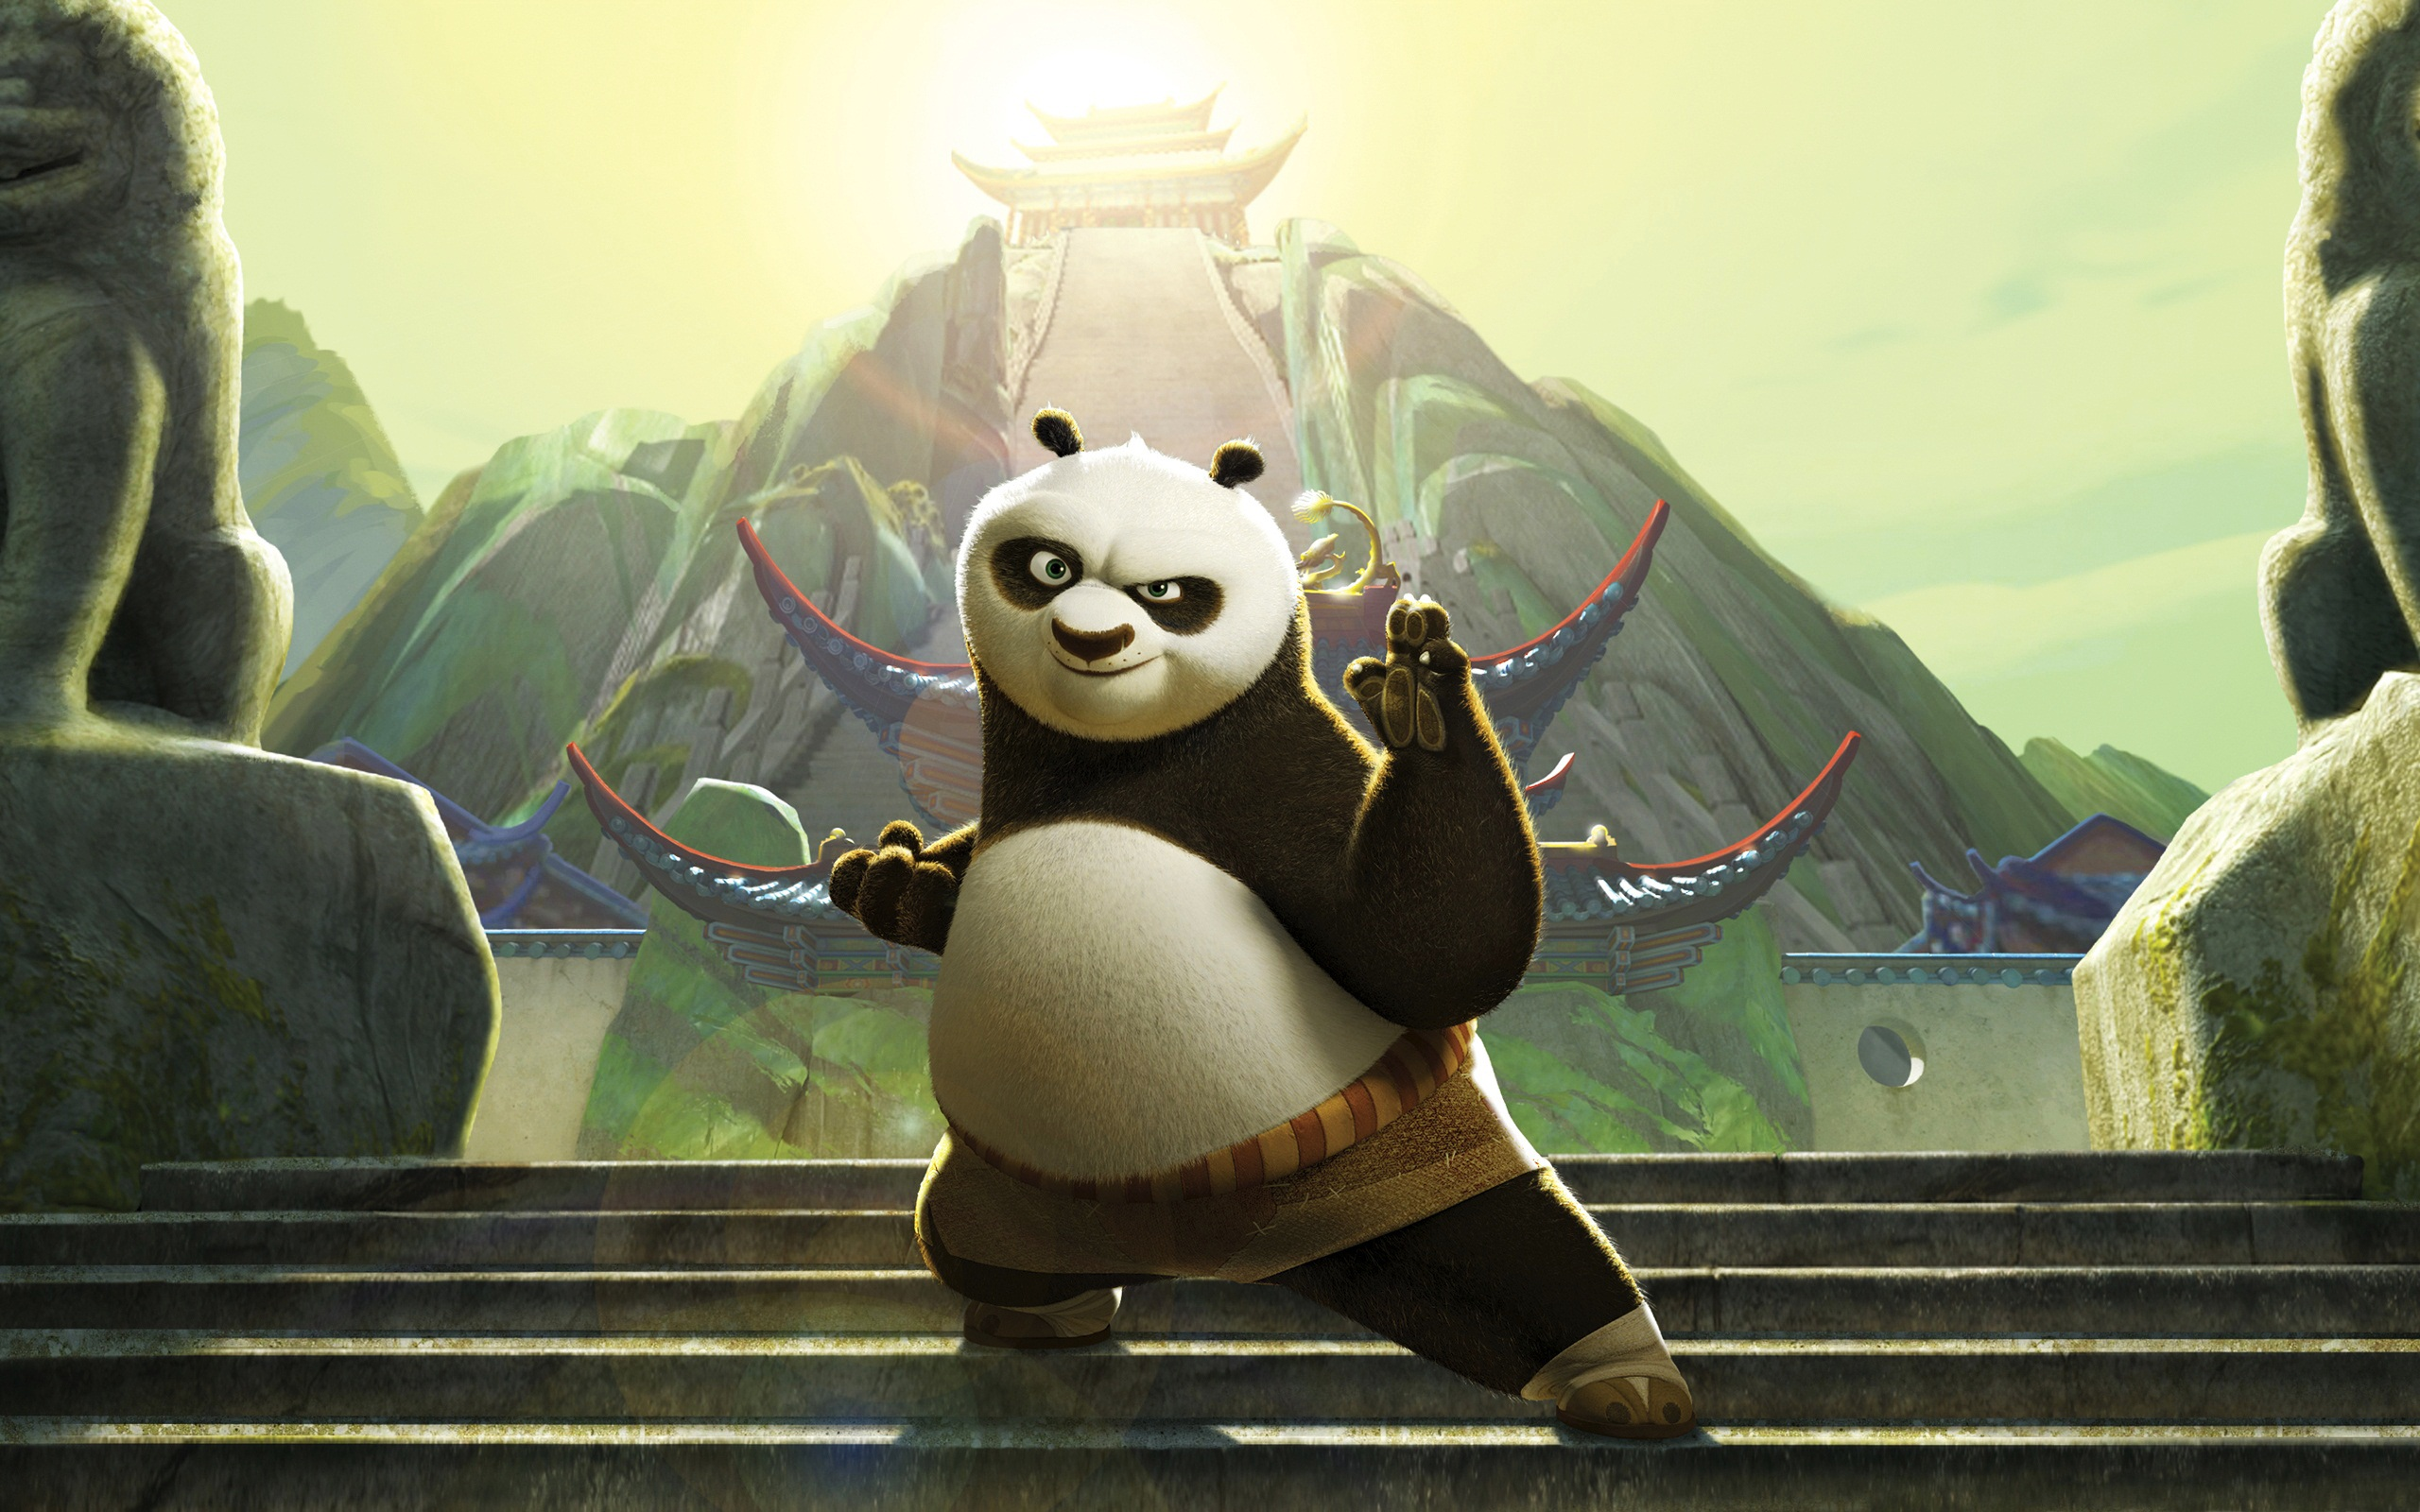 kung_fu_panda_2_movie_2011-wide.jpg